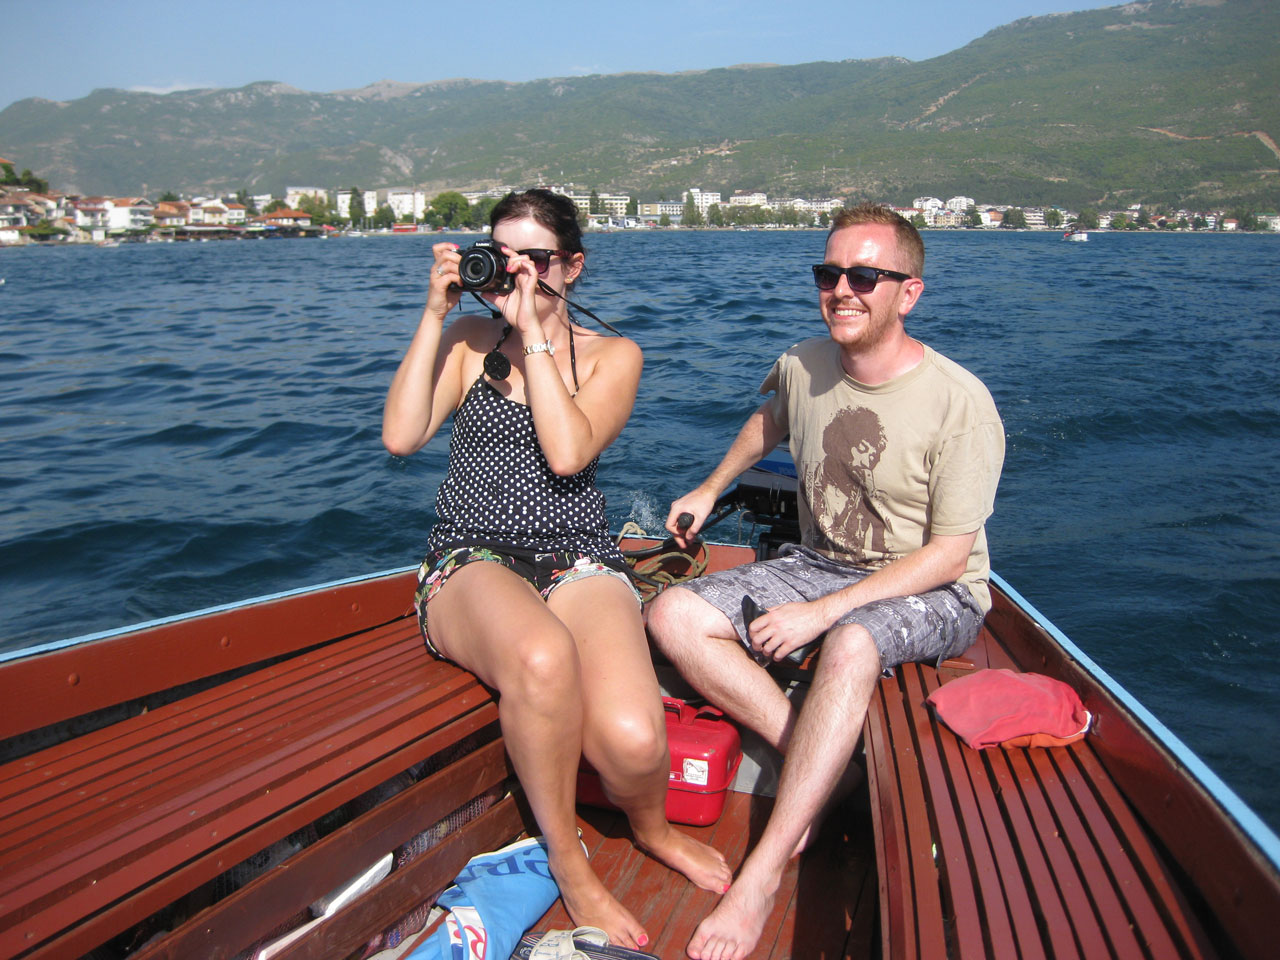 Me steering the boat around Lake Ohrid, Macedonia